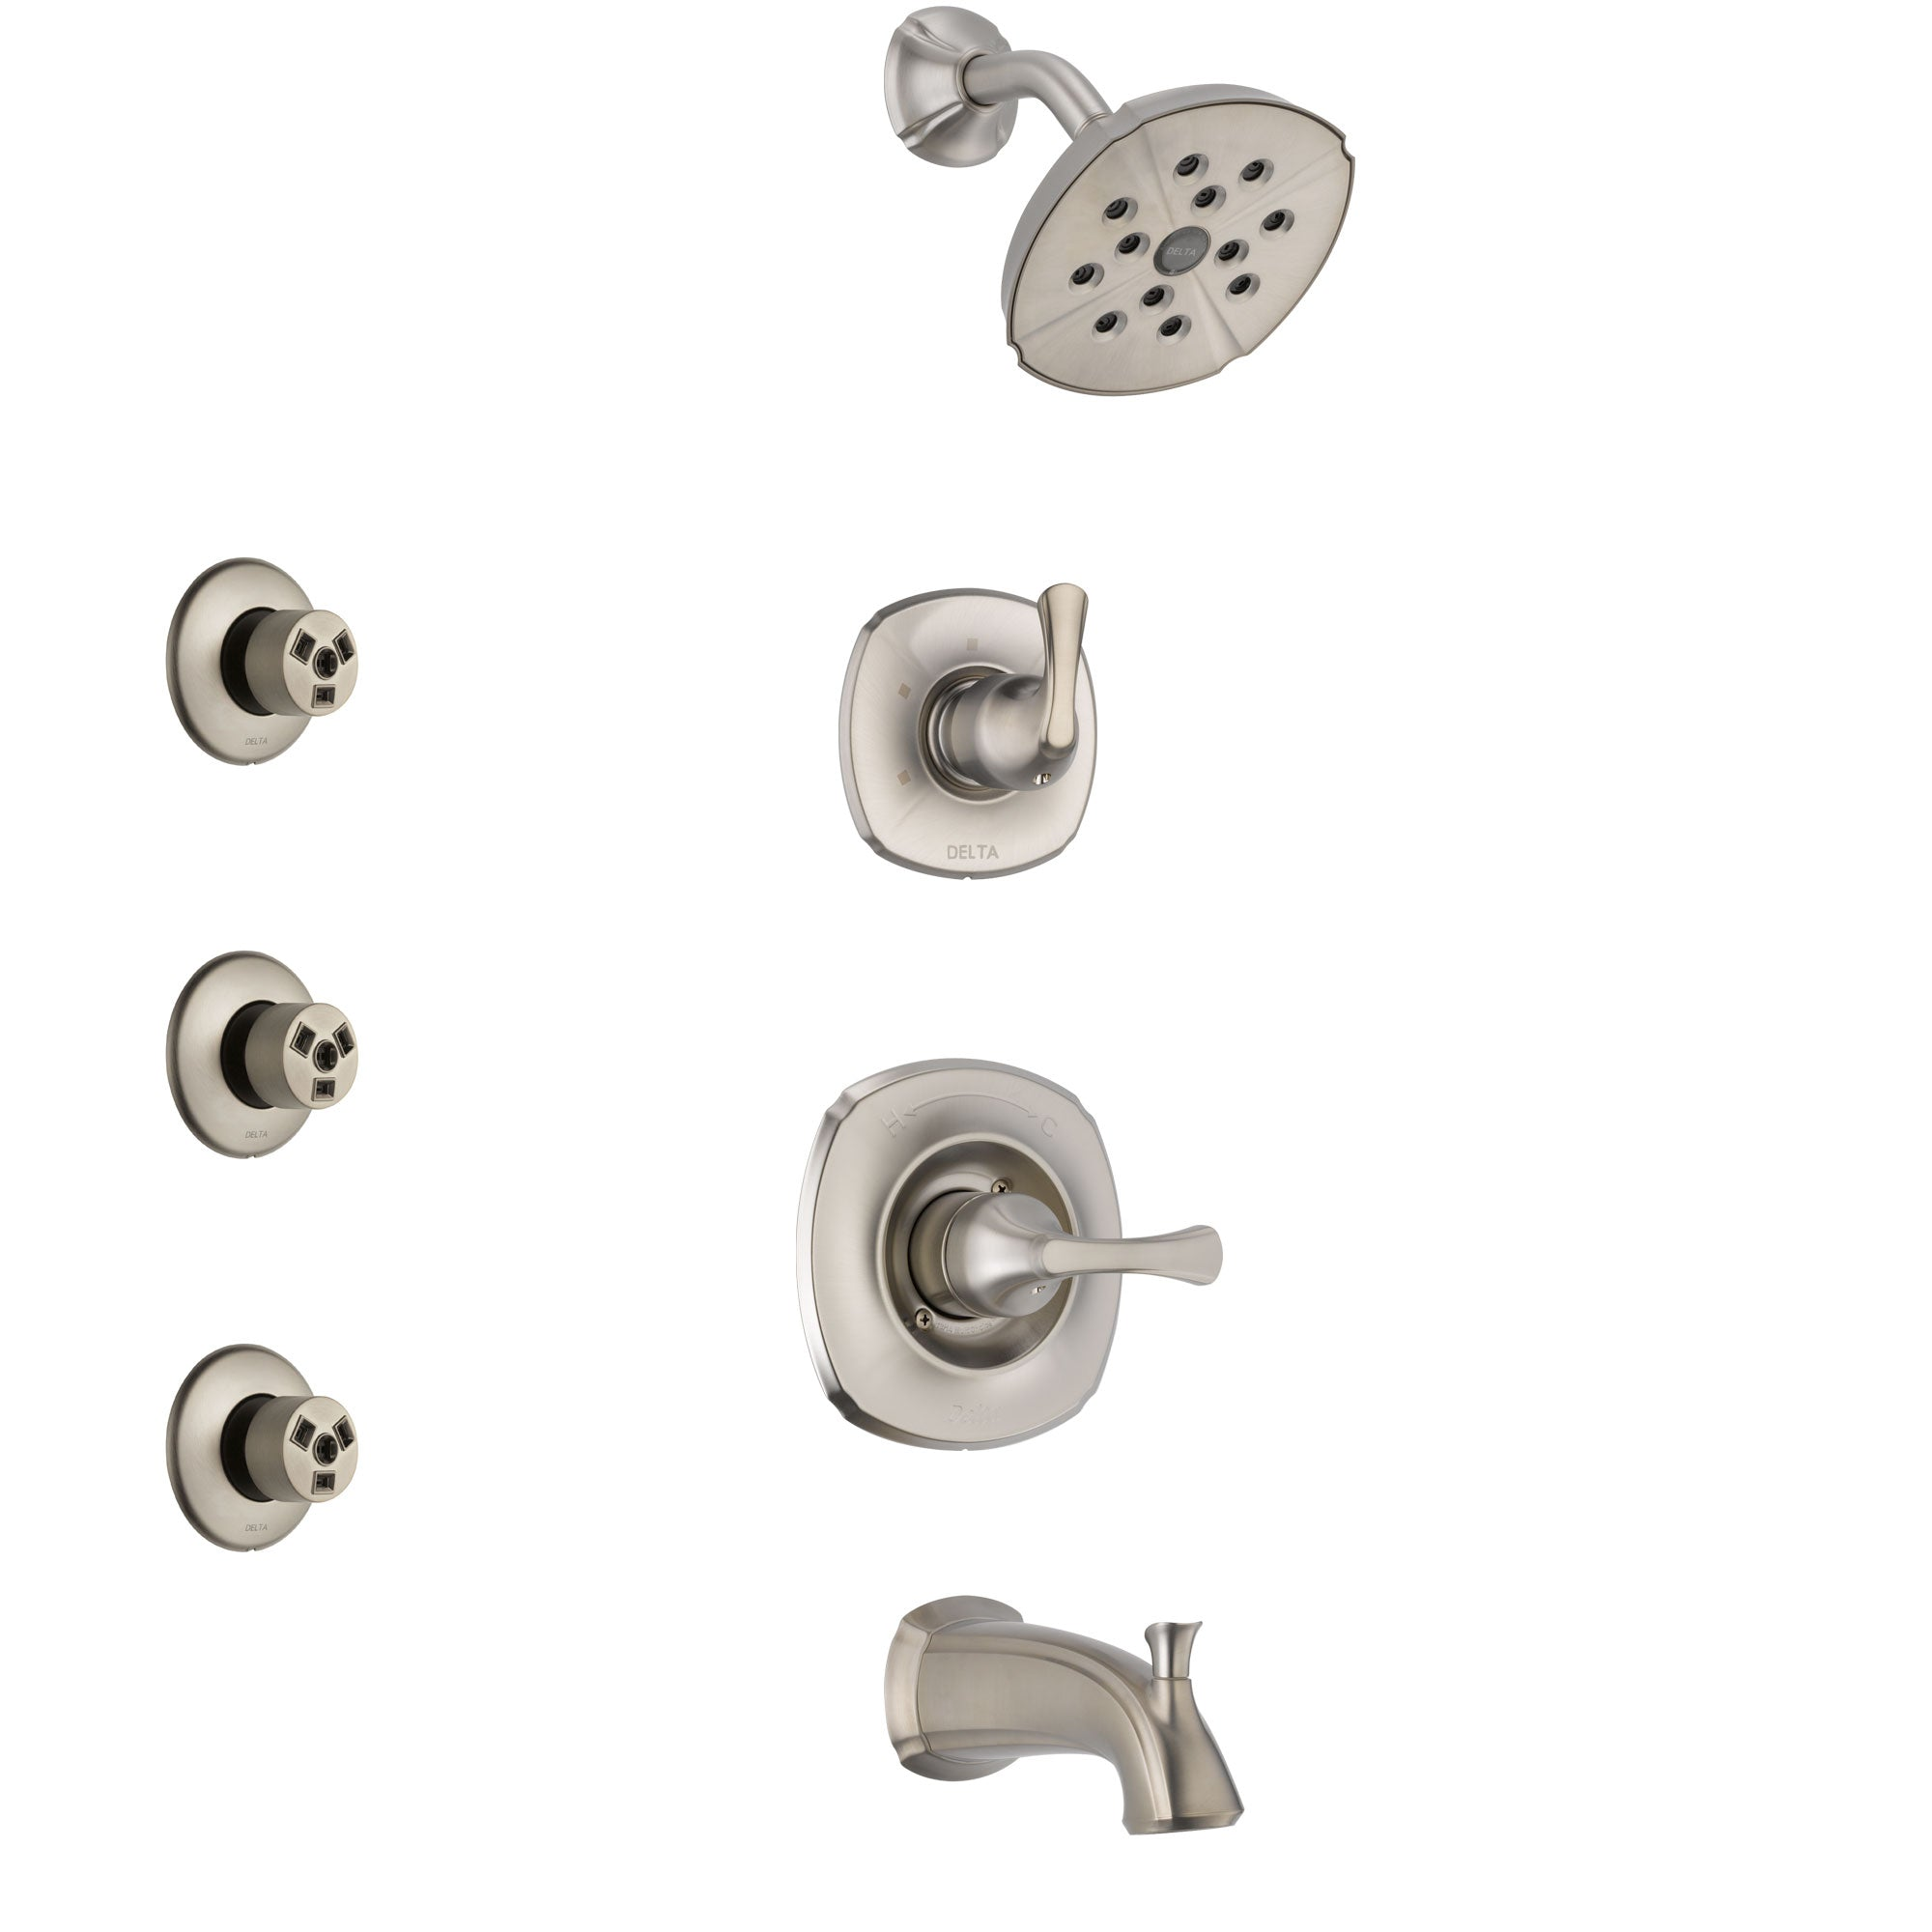 Delta Addison Stainless Steel Finish Tub and Shower System with Control Handle, 3-Setting Diverter, Showerhead, and 3 Body Sprays SS14492SS1